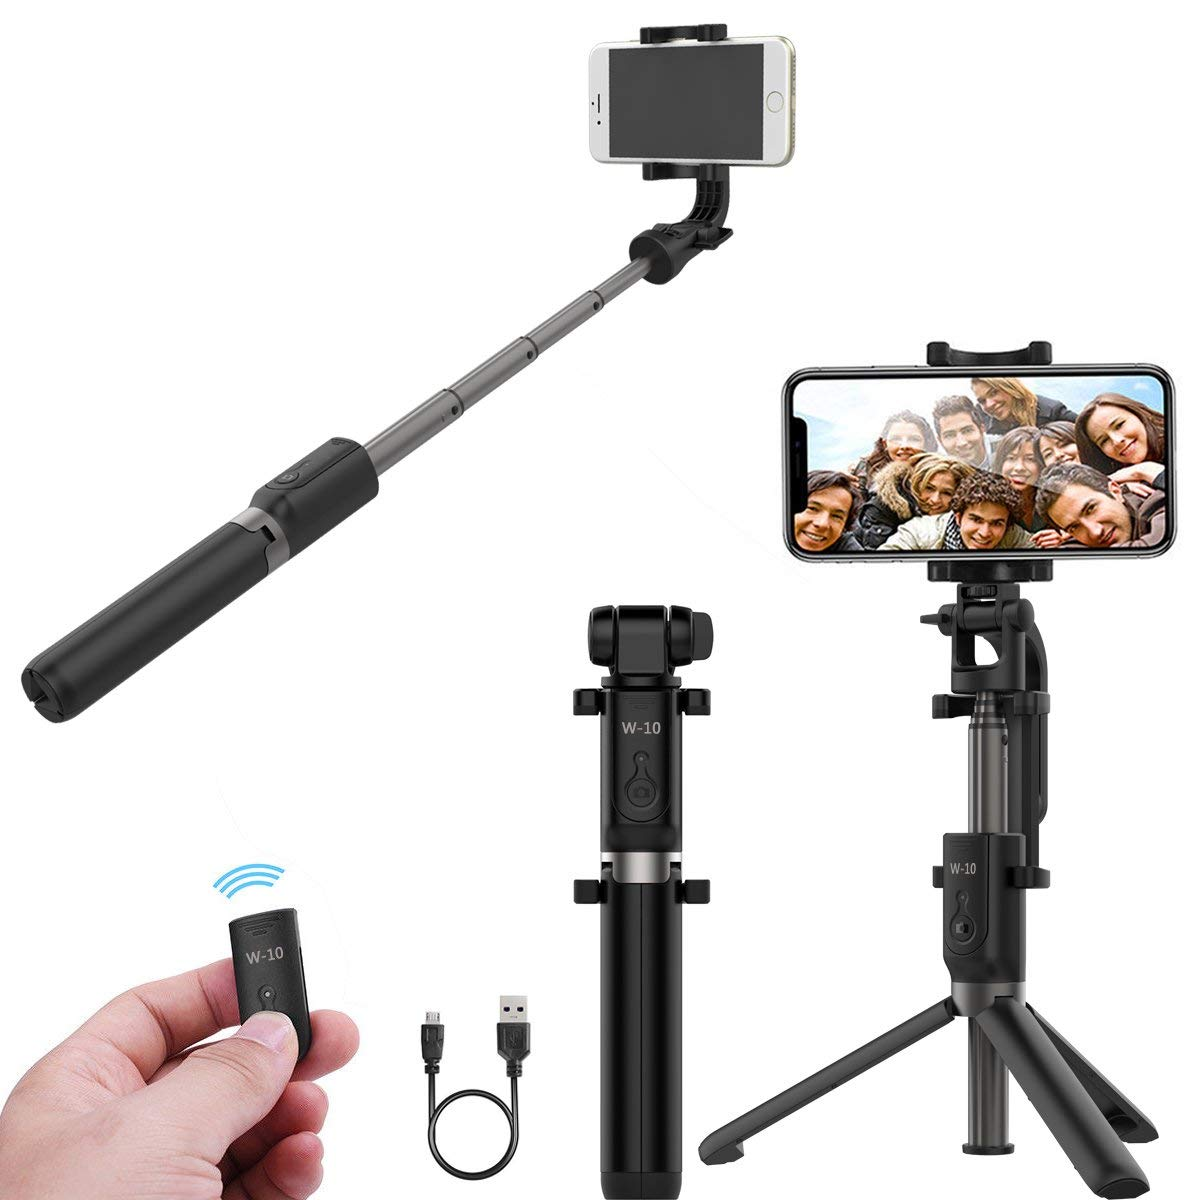 Flames Selfie Stick Bluetooth, Extendable Selfie Stick with Wireless Remote and Tripod Stand Selfie Stick for iPhone X/iPhone 8/8 Plus/iPhone 7/7 Plus/6 Plus/Galaxy S9/S9 Plus/Note 8/S8/(Black)